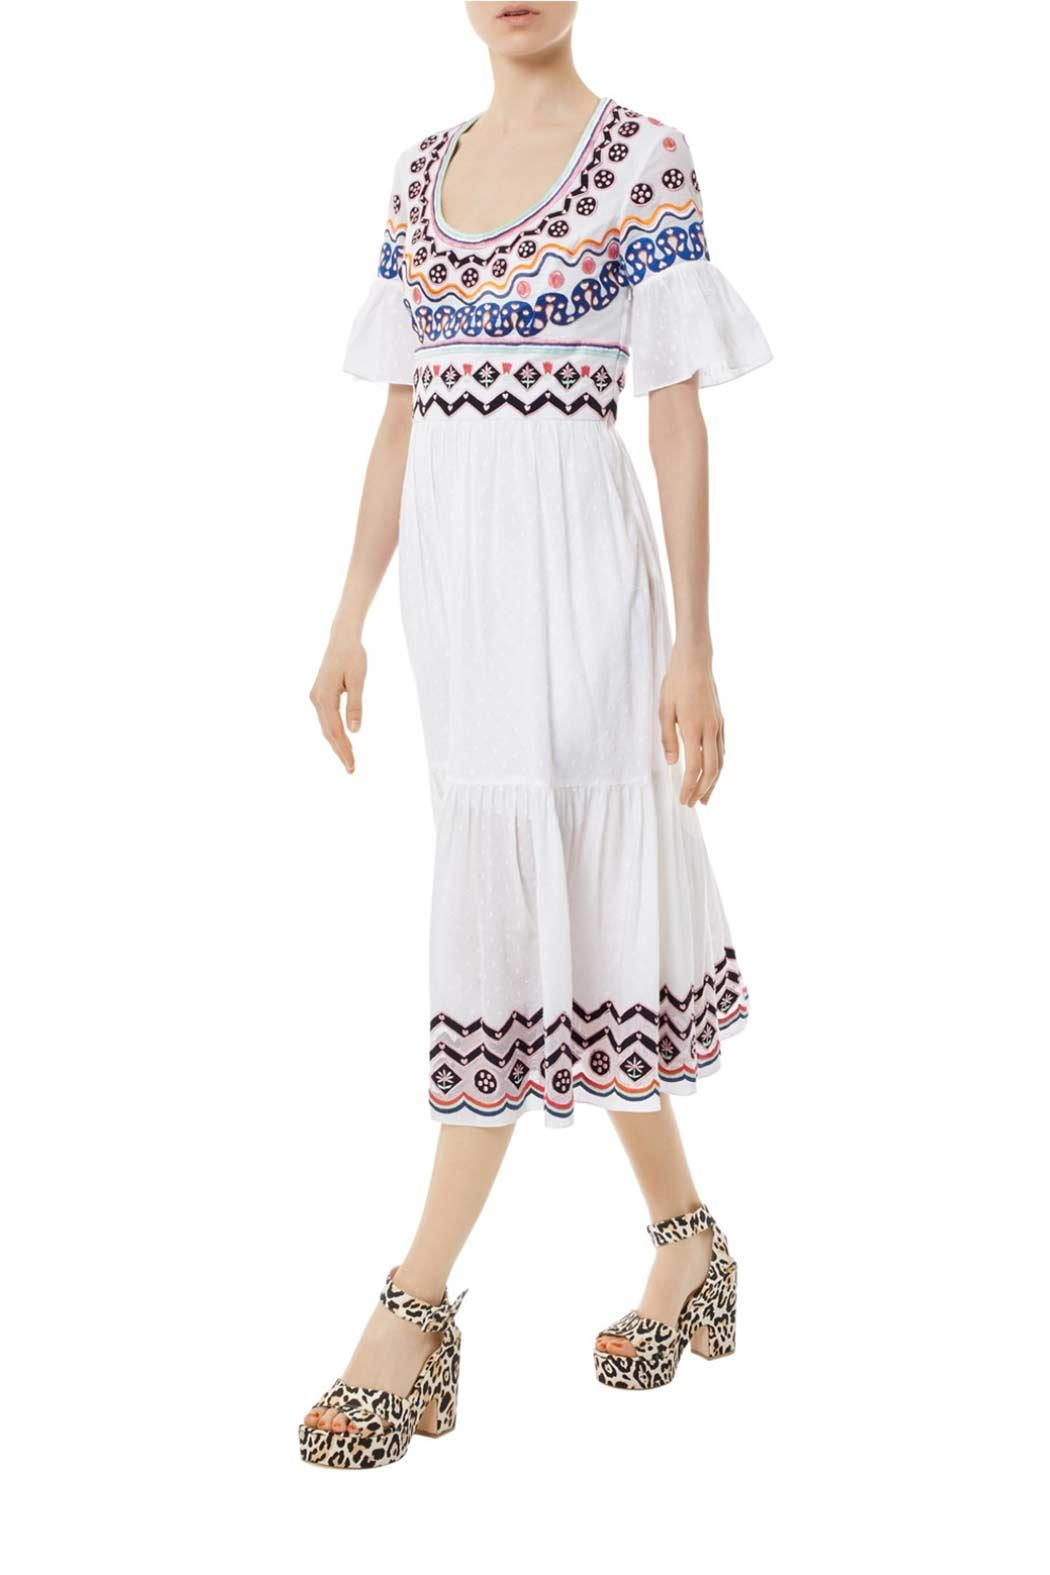 Temperley London Stitchwork Midi Dress - Front Full Image